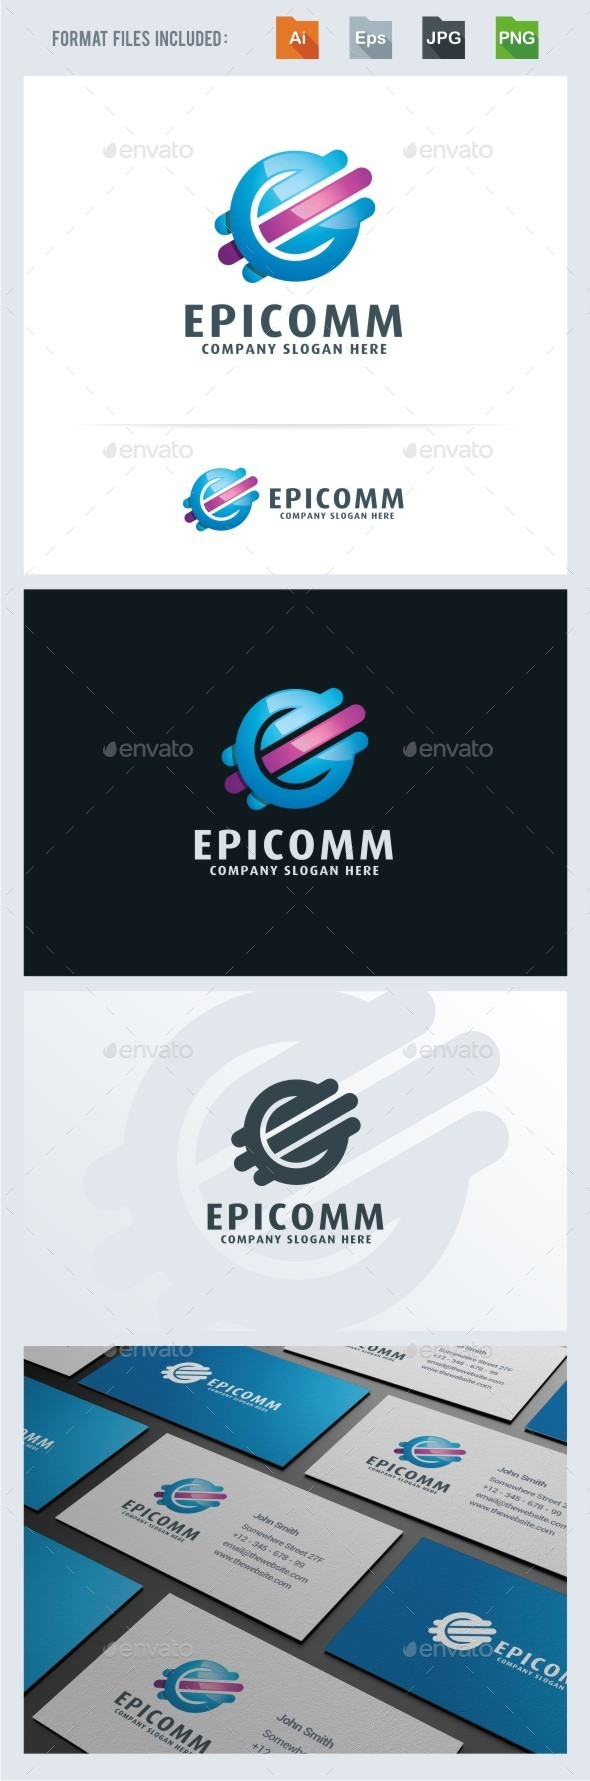 Epic Communication Logo Template - Vector Abstract